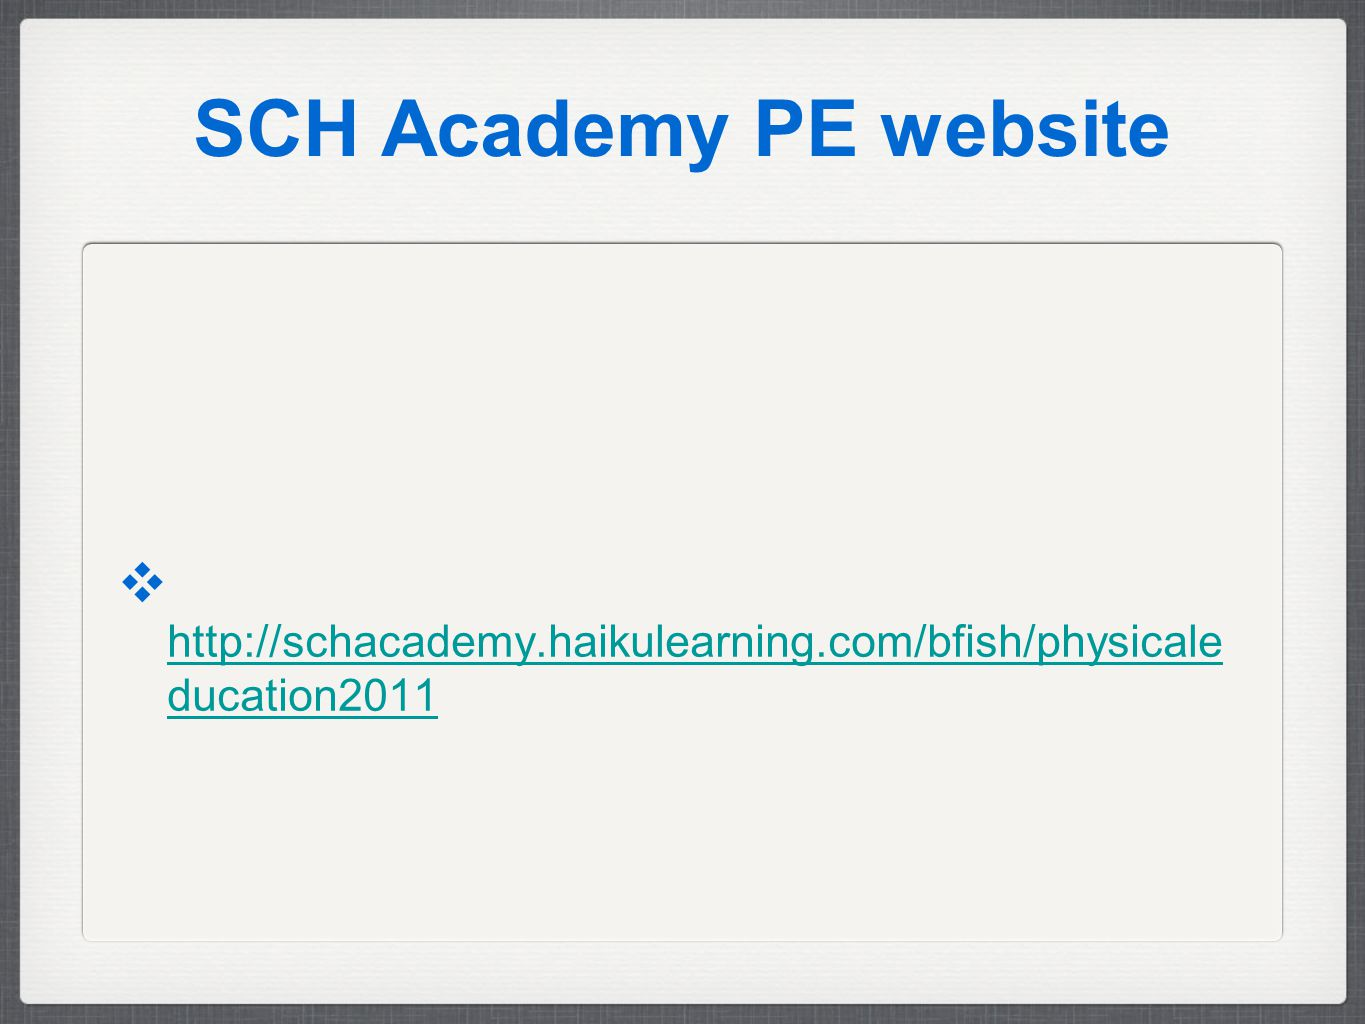 SCH Academy PE website ❖ http://schacademy.haikulearning.com/bfish/physicale ducation2011 http://schacademy.haikulearning.com/bfish/physicale ducation2011